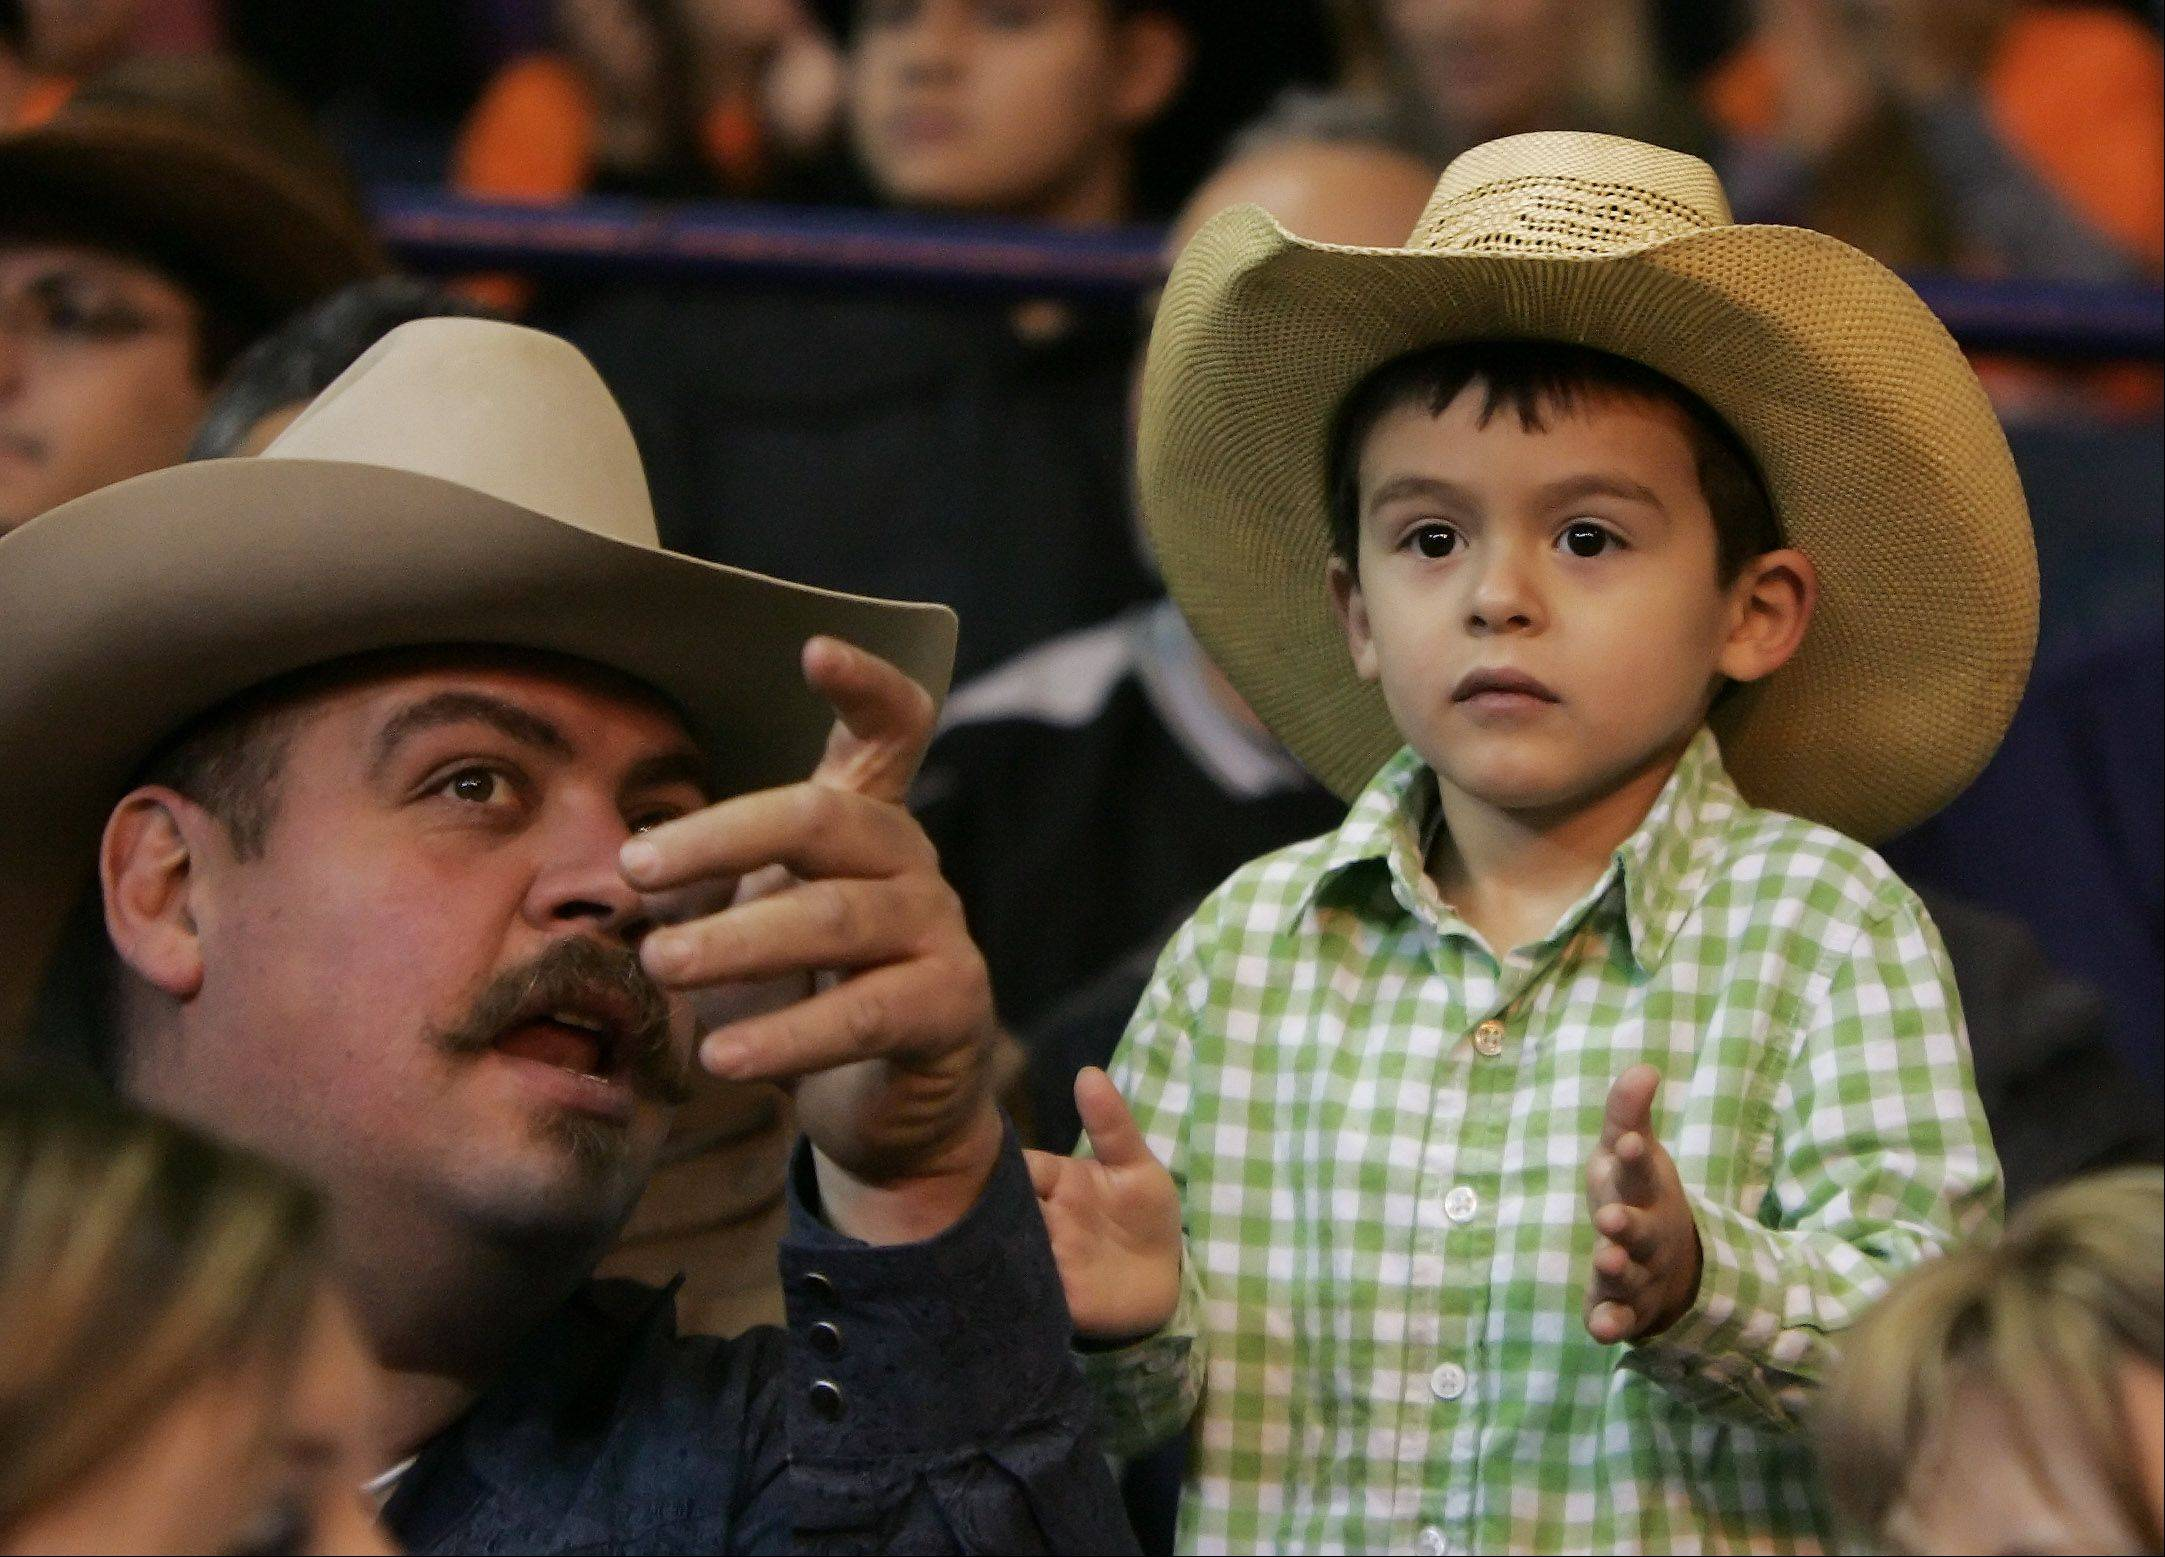 Lazaro Quloa, 3, of Joliet, watches the bull riders with his father, Jose, during the Professional Bull Riders Chicago Invitational Sunday at the Allstate Arena in Rosemont. Riders from around the world competed in the arena by riding 2,000-pound bulls.